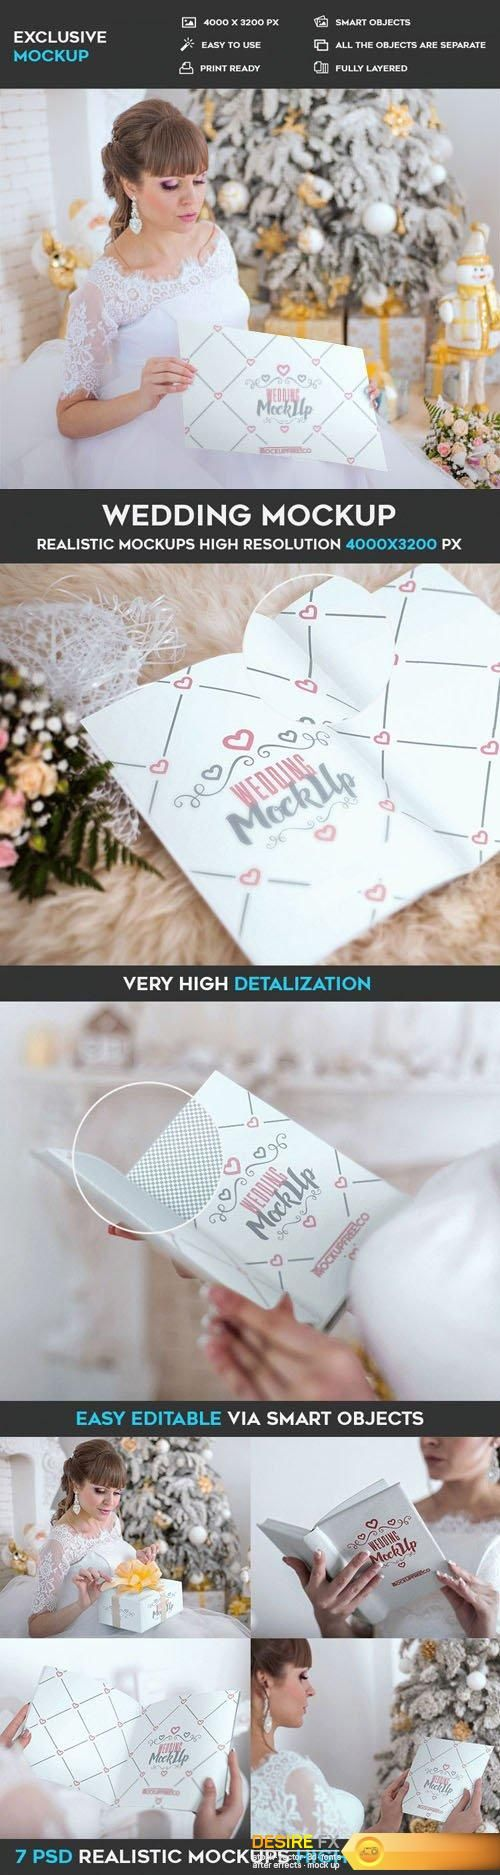 Wedding Invitation, Poster and Book - 7 PSD Mockups http://www.desirefx.me/wedding-invitation-poster-and-book-7-psd-mockups/